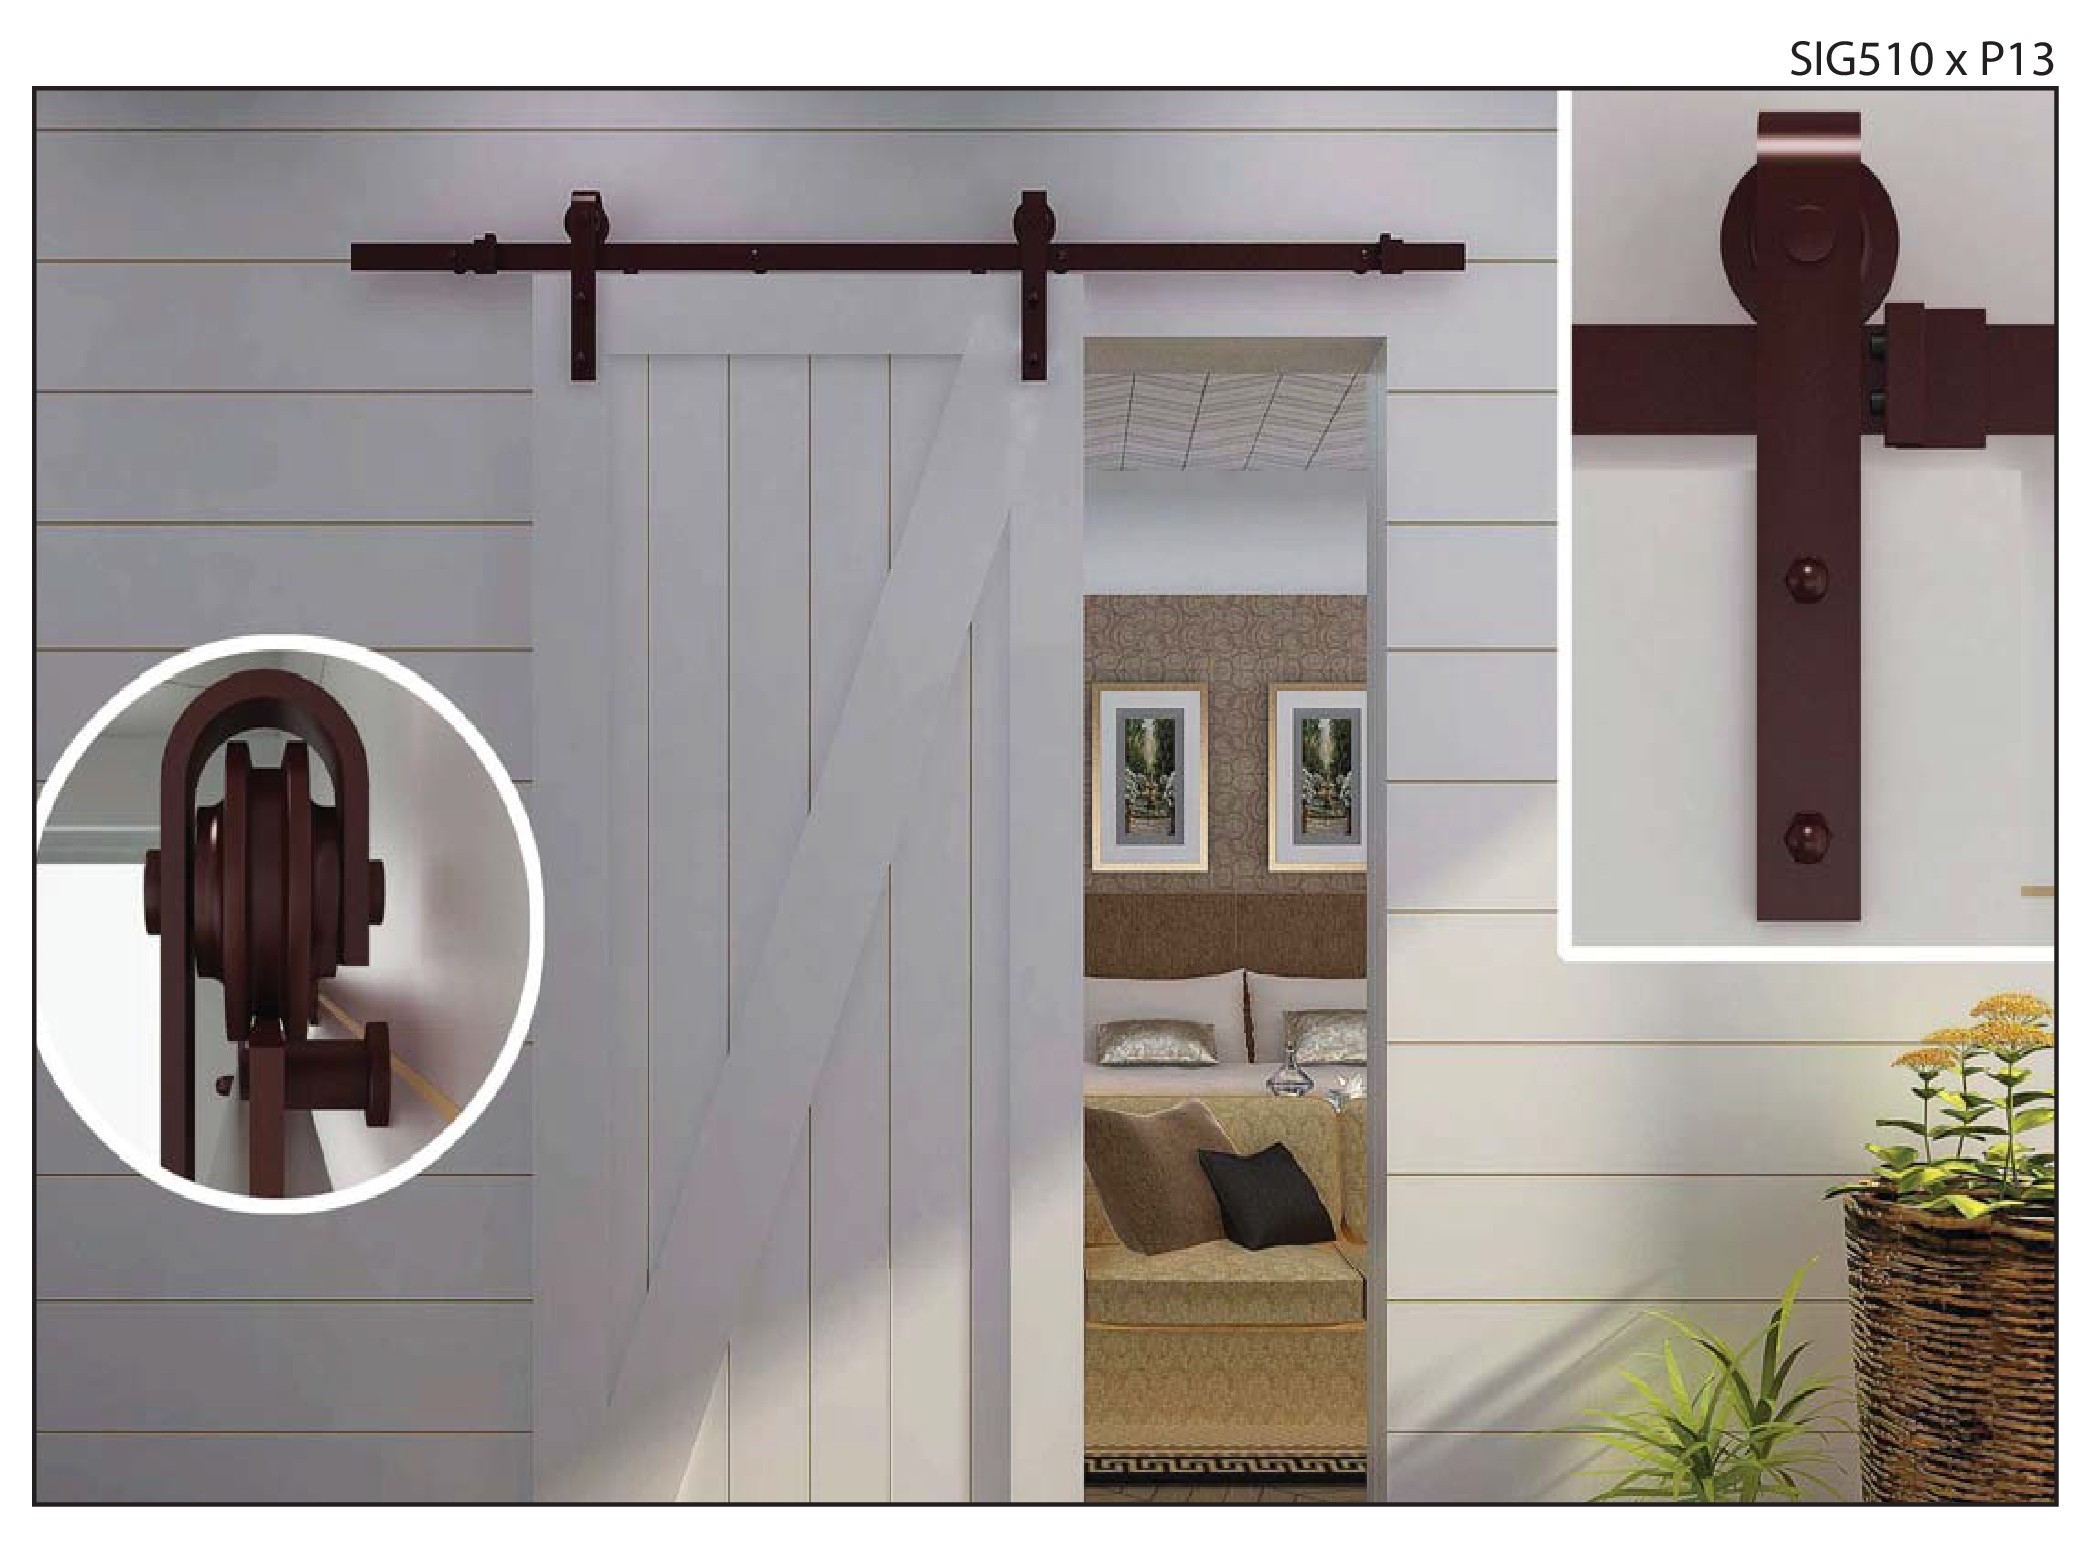 Hardware for wall mounted sliding door - Wall Mounted Sliding Door Hardware Kit2093 X 1542